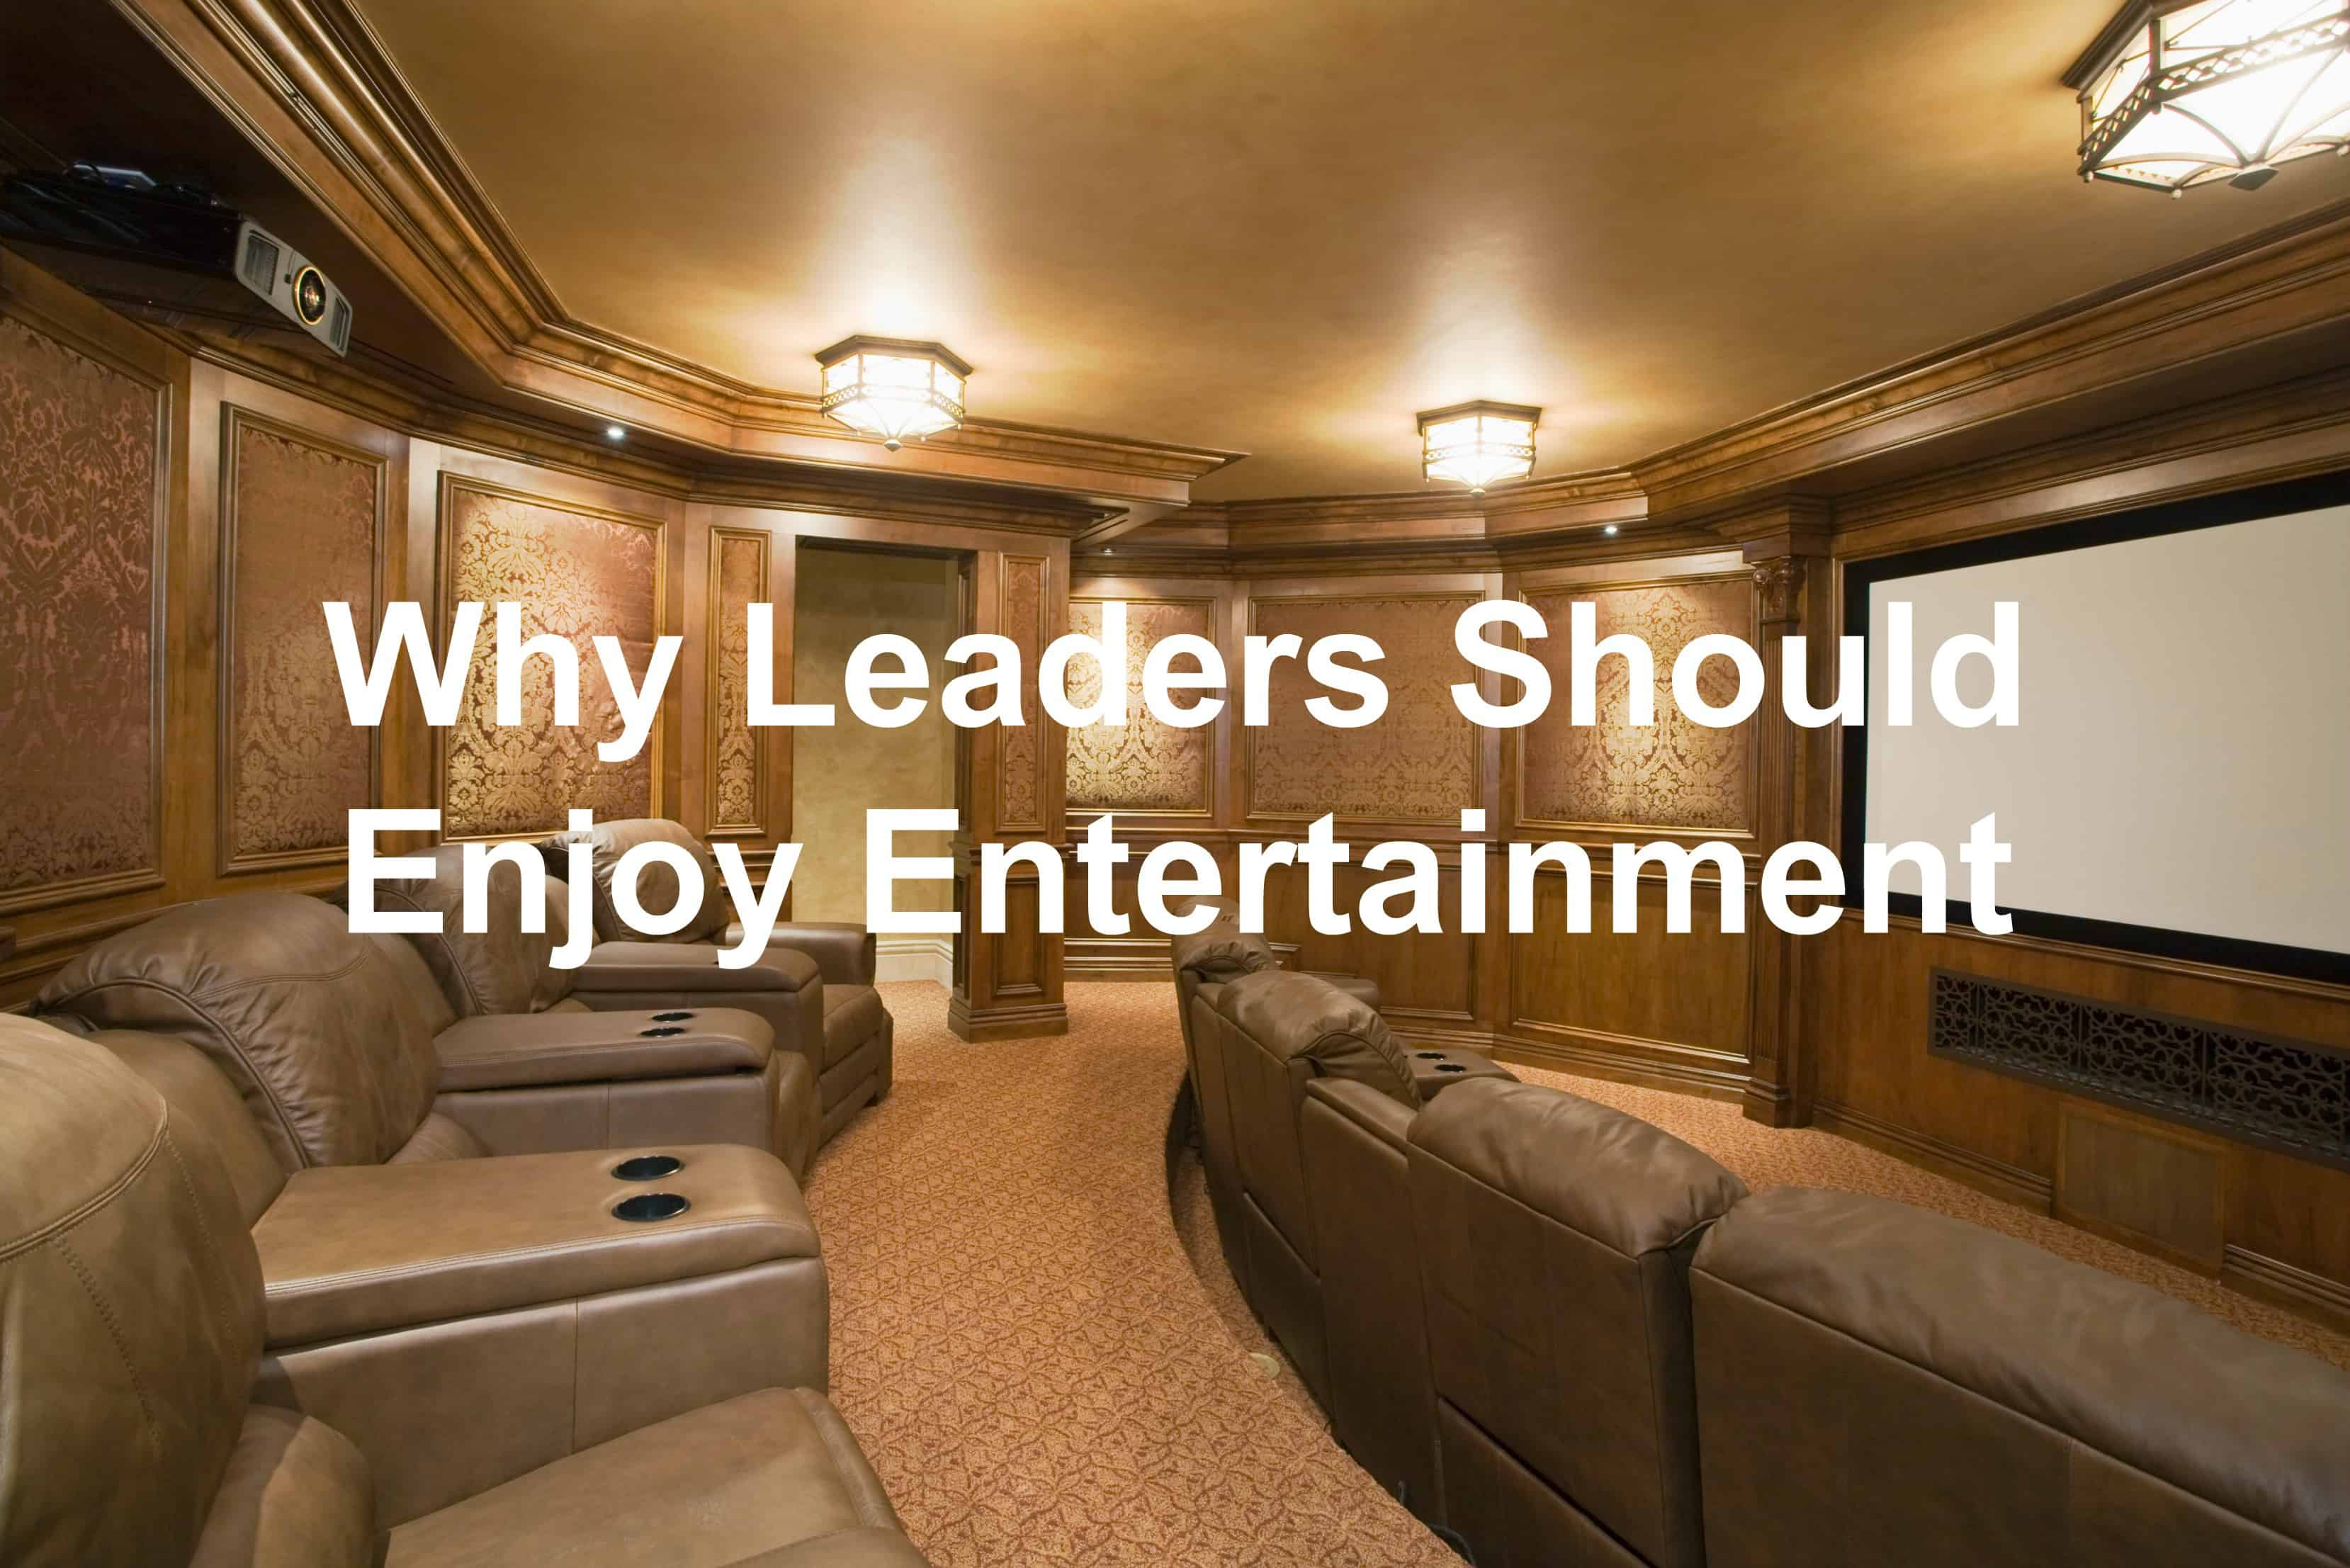 Leaders need to enjoy entertainment too